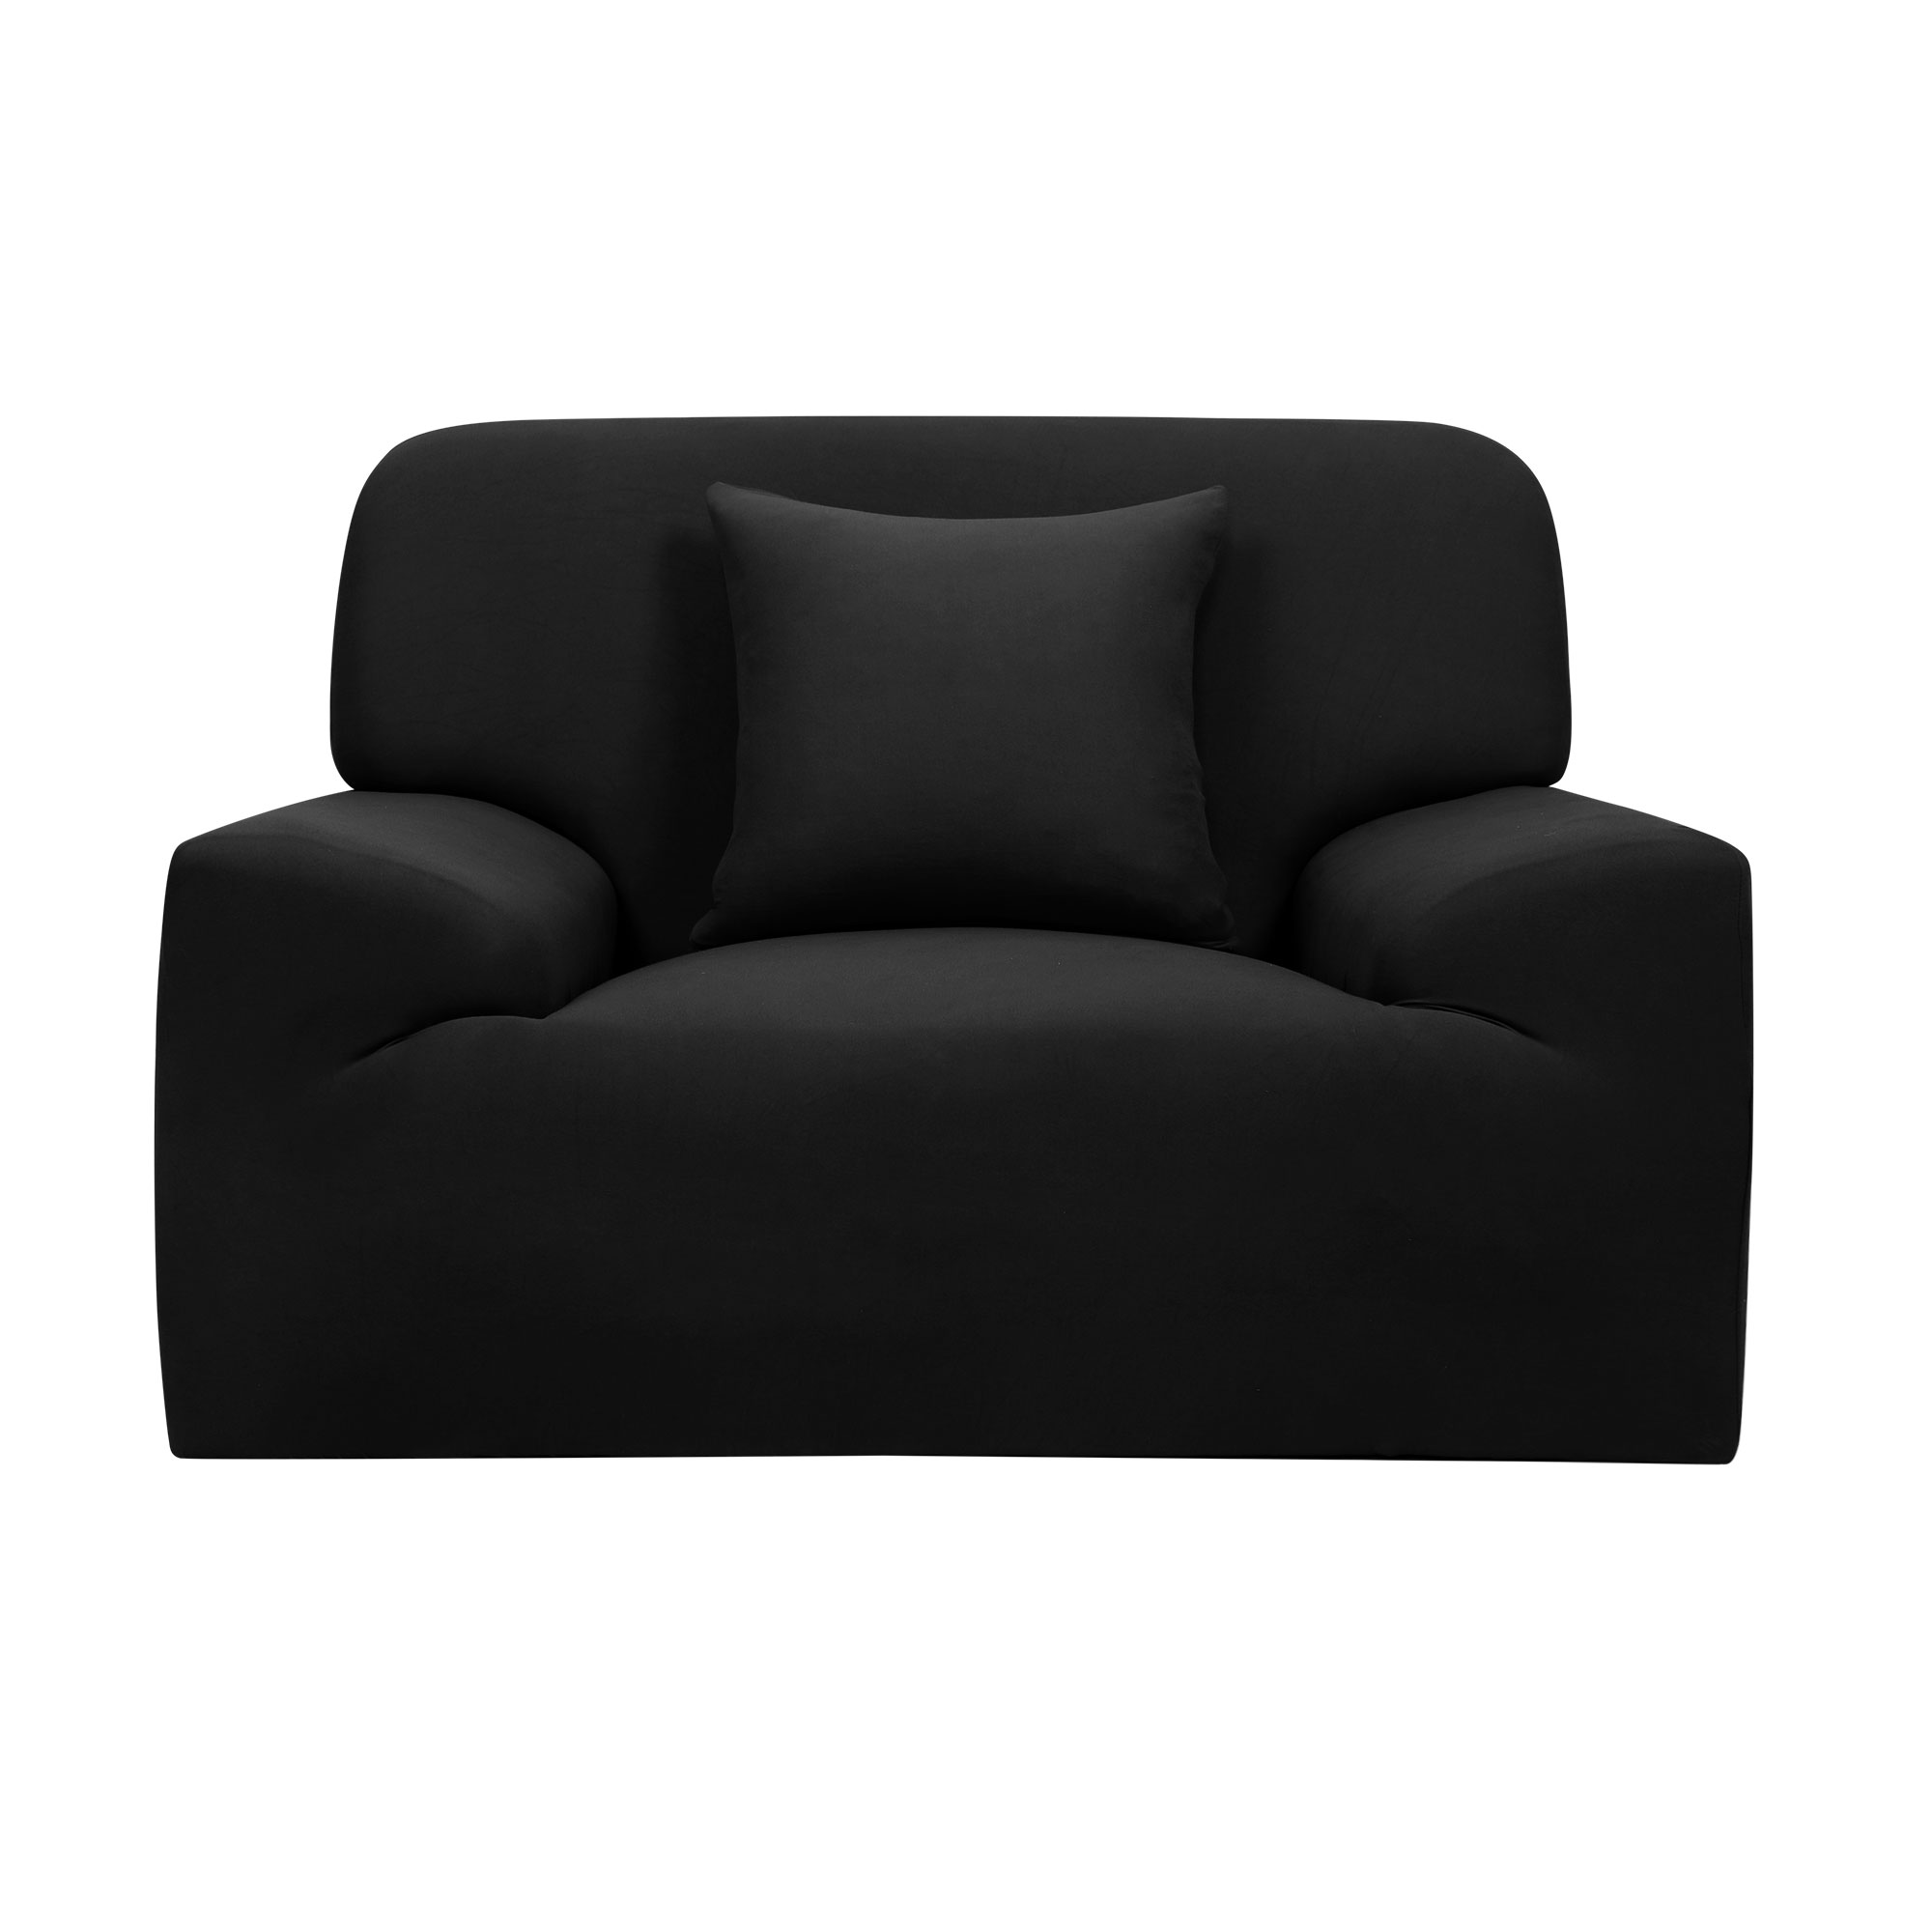 Furniture Chair Sofa Couch Stretch Protector Cover Slipcover Black 35''-55''